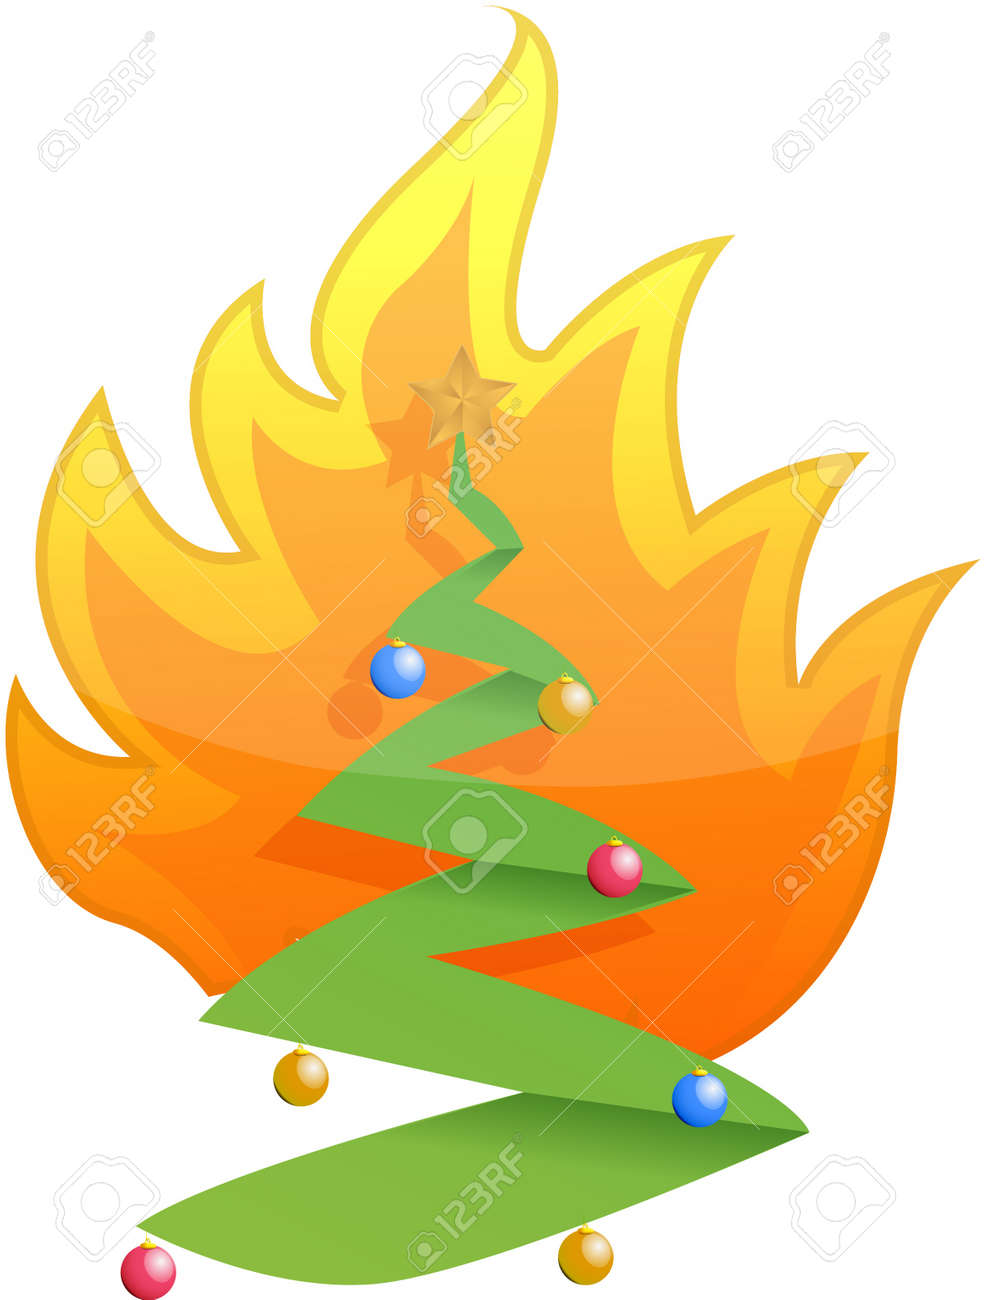 Christmas Tree On Fire Illustration Design On White Royalty Free  - Christmas Trees On Fire